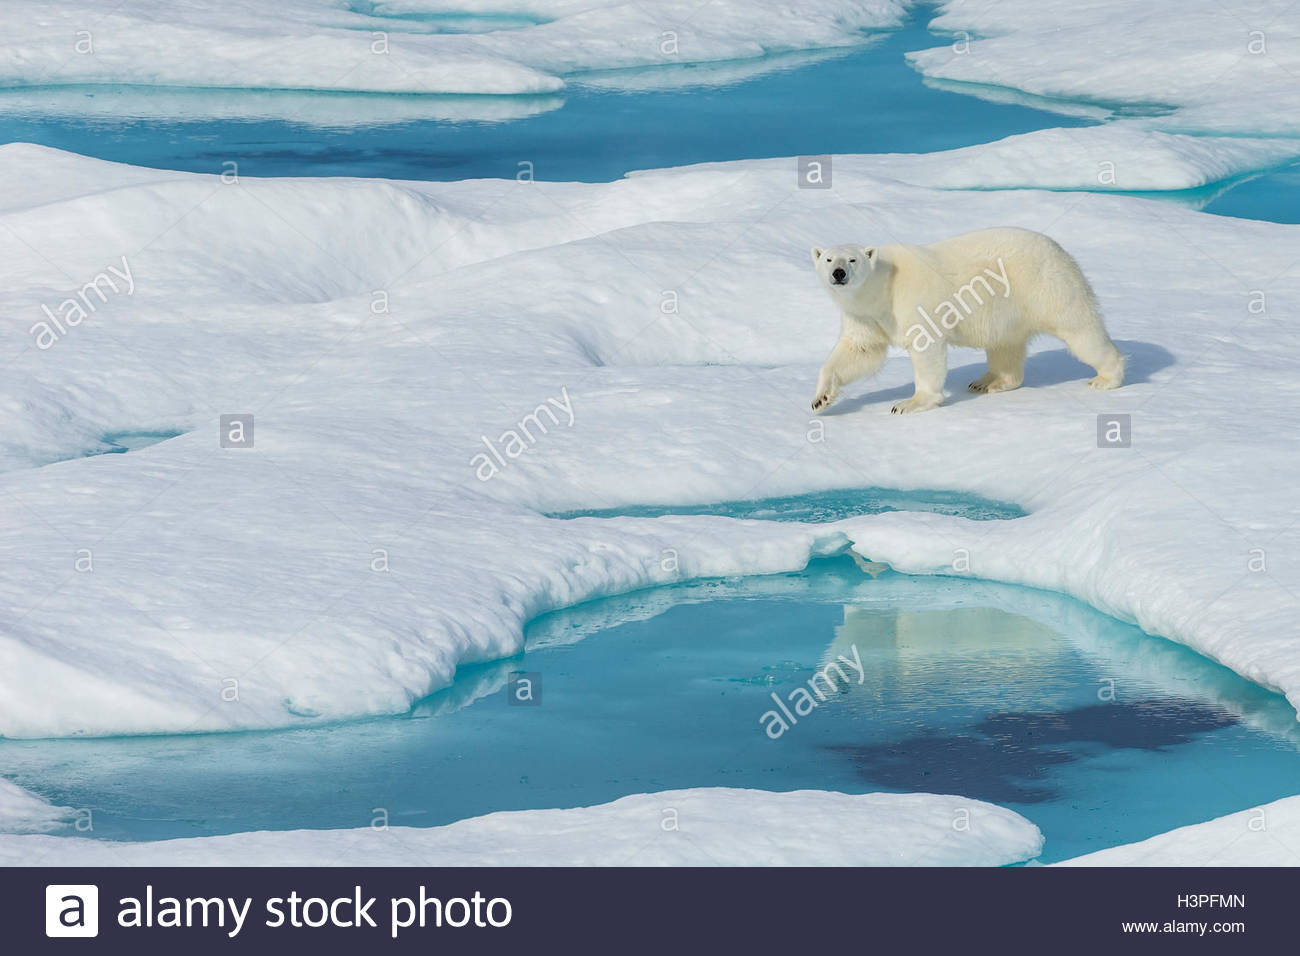 A polar bear (Ursus maritimus) wanders past pools of water on an ice floe in the Canadian Arctic. - Stock Image